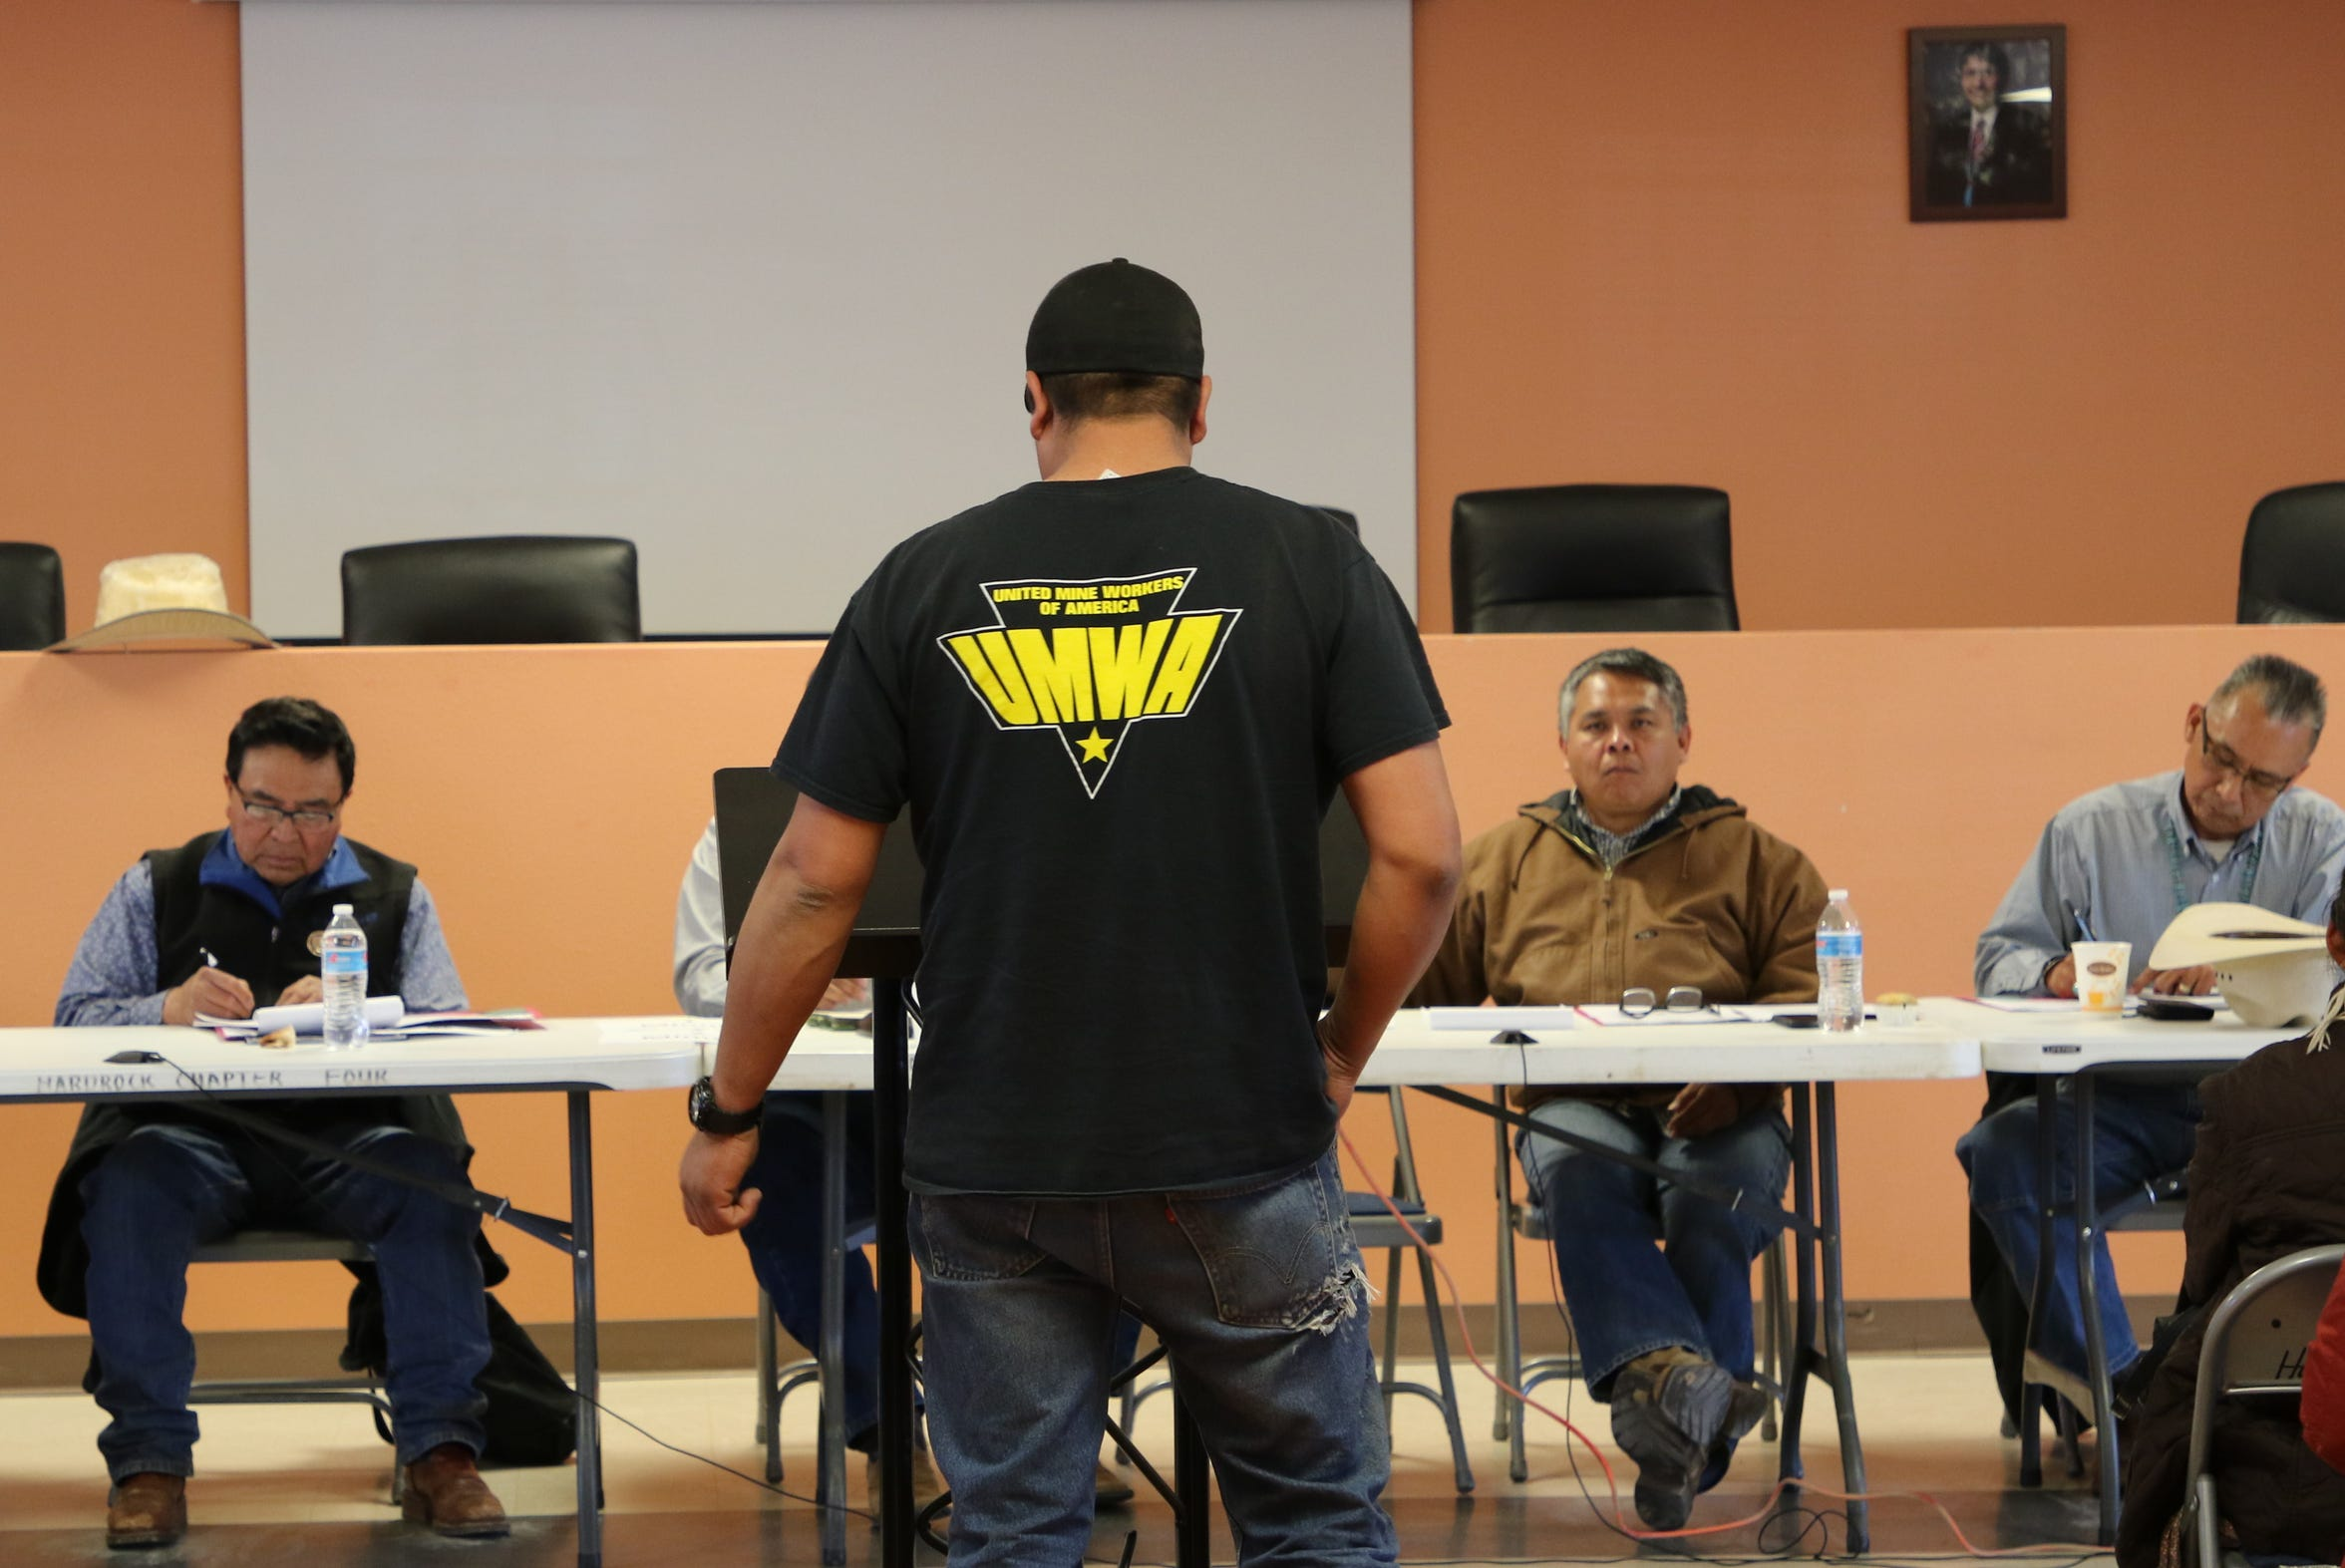 Kayenta Mine employee Nathan Gray, center, provides comments that favor continuing the coal mining operation on Black Mesa at the town hall meeting on Friday at the Hardrock Chapter house in Hardrock, Ariz.